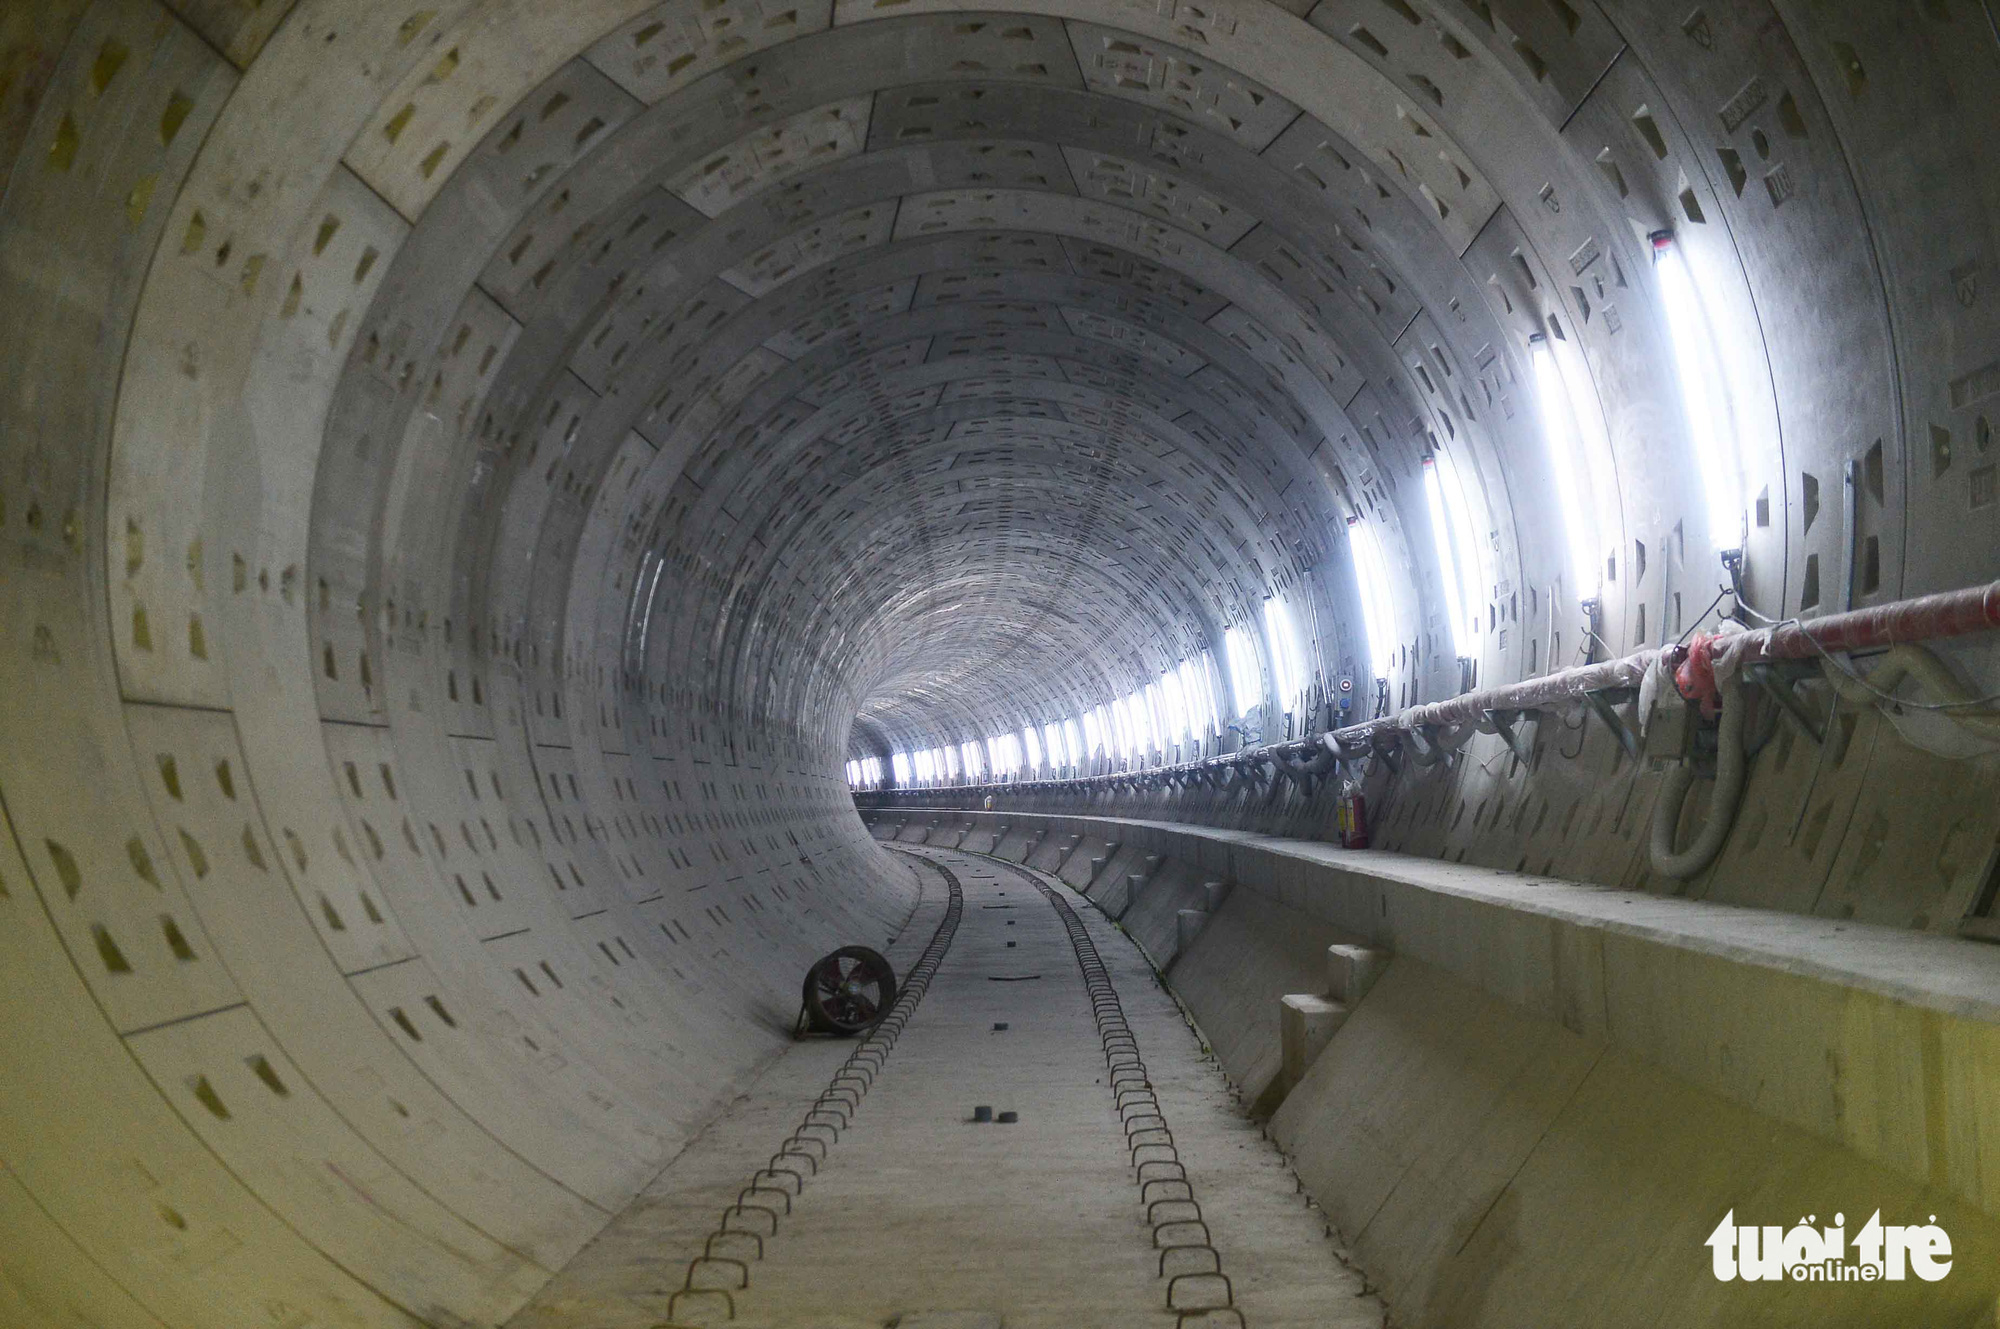 A tunnel connecting the Municipal Theater Terminal with Ben Thanh Terminal of Ho Chi Minh City's metro line No. 1 project. Photo: Quang Dinh / Tuoi Tre